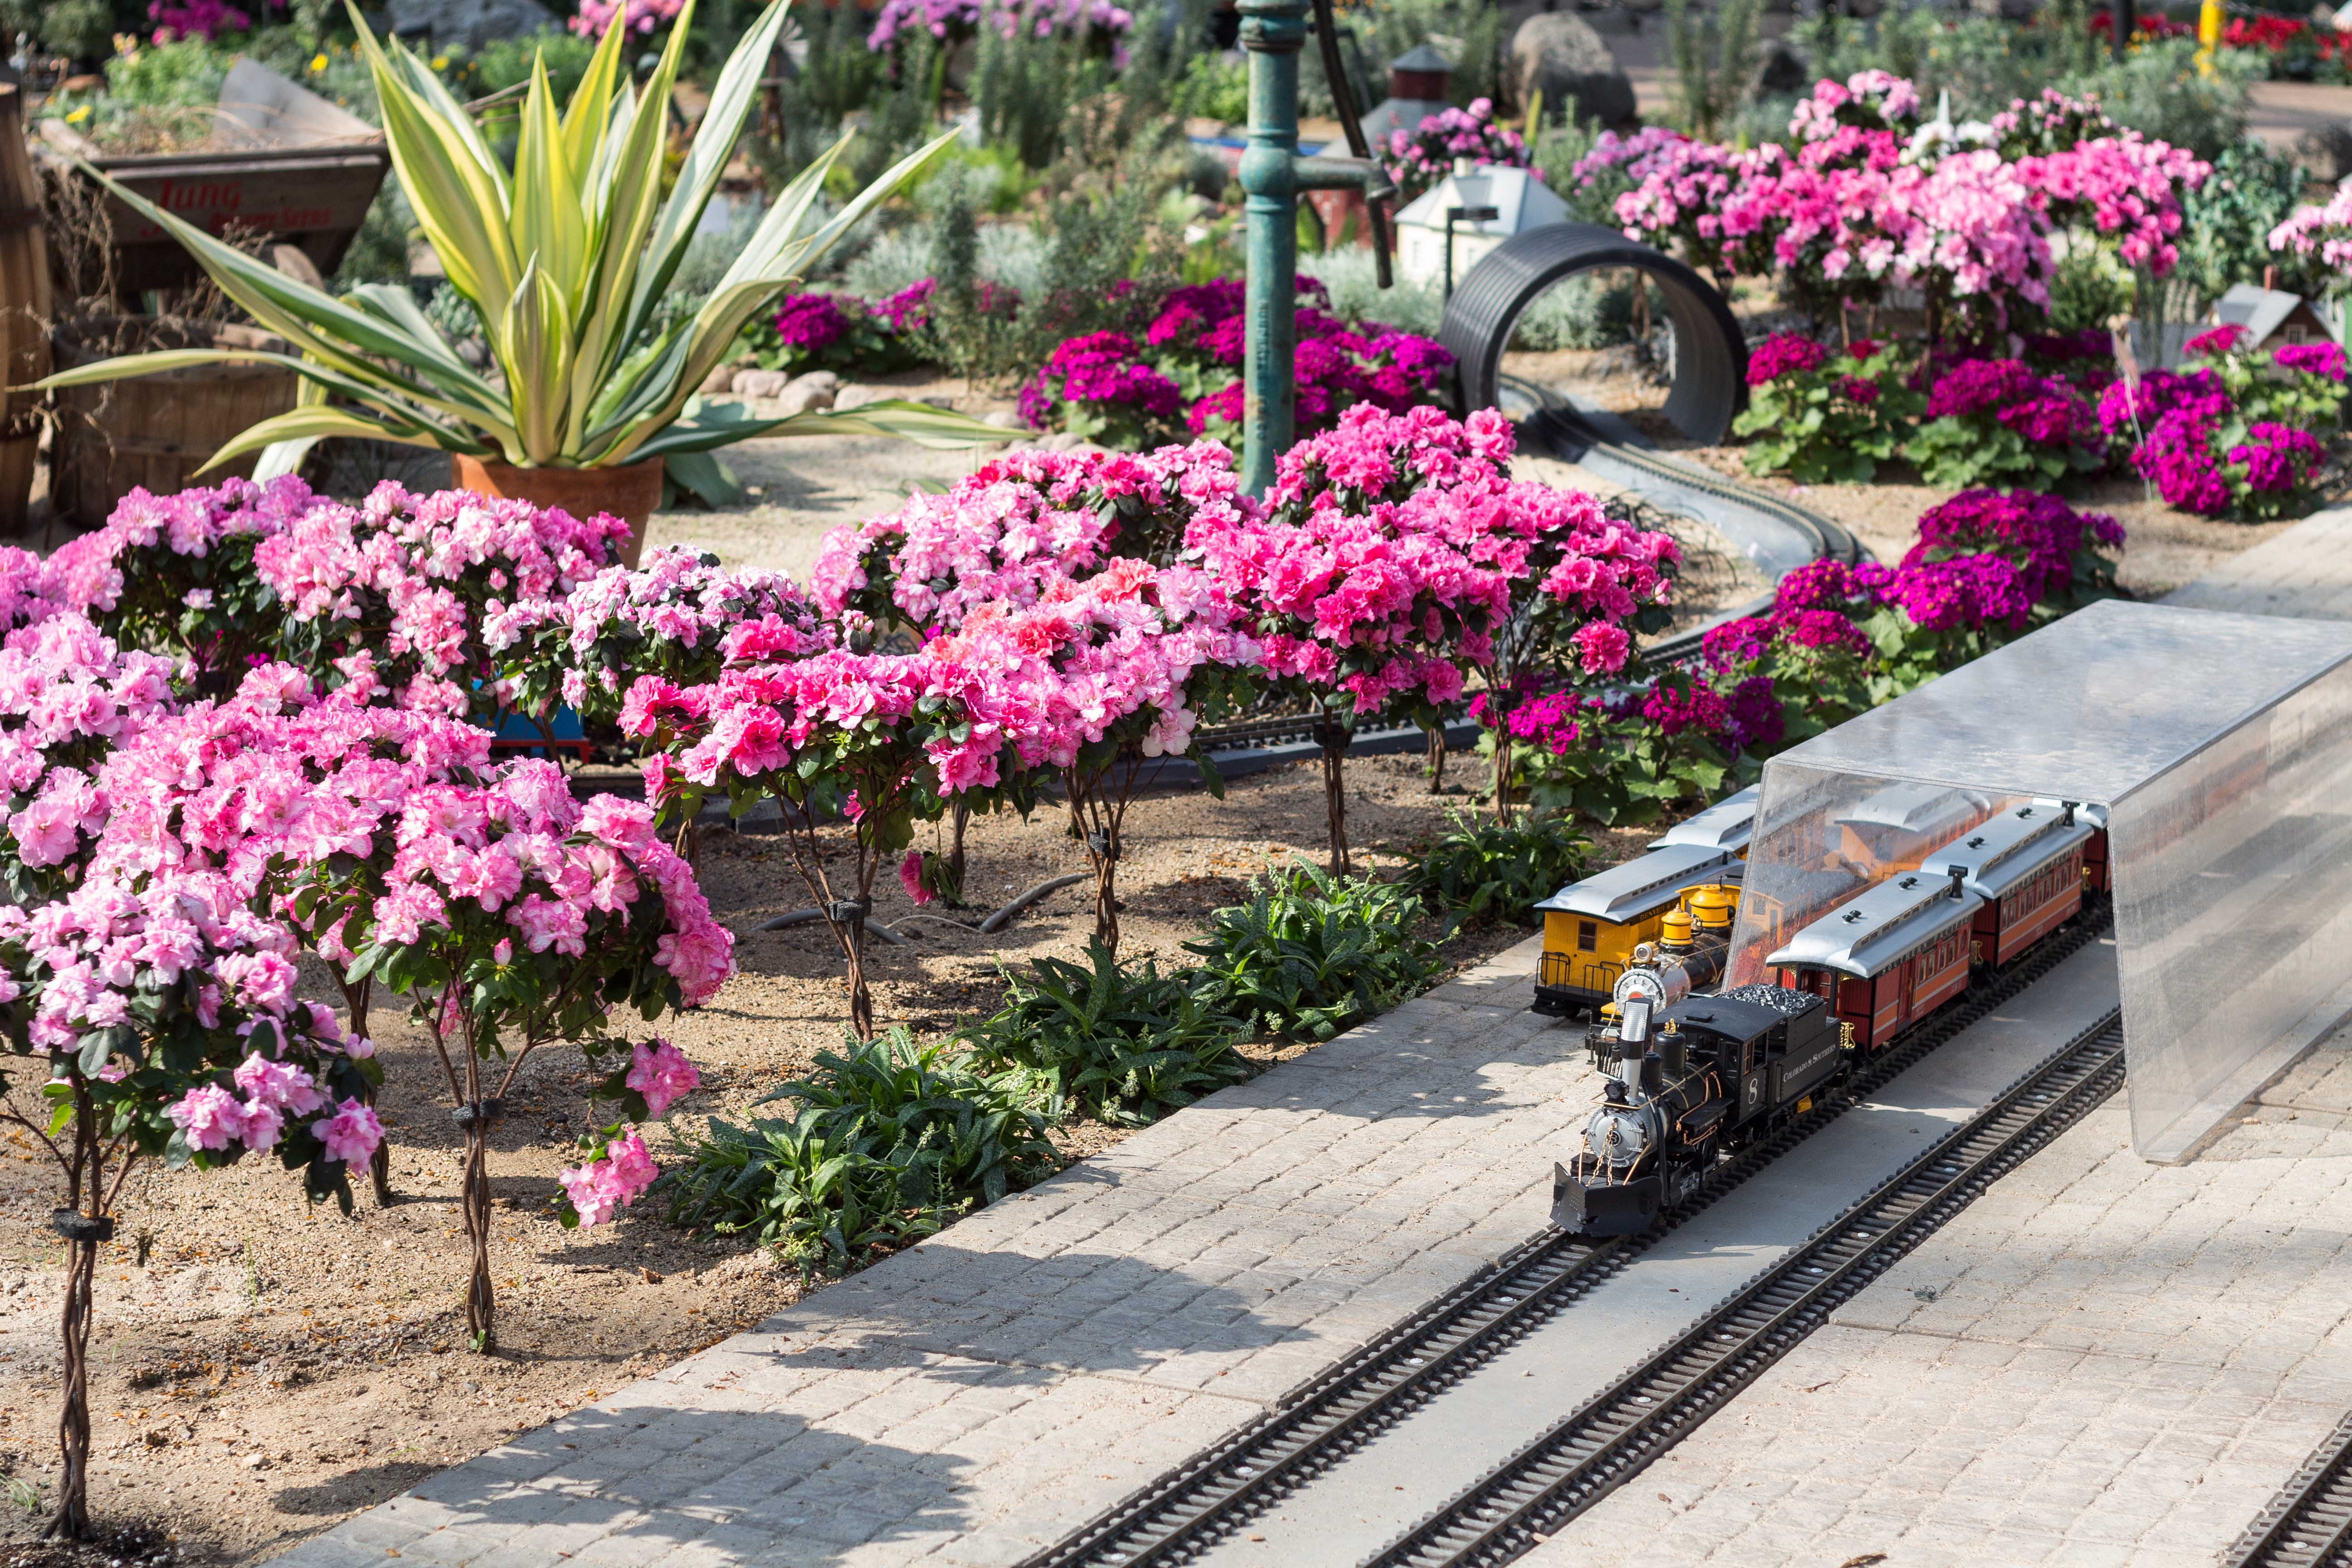 The Great Train Robbery Train Show at the Domes | https://www.roseclearfield.com